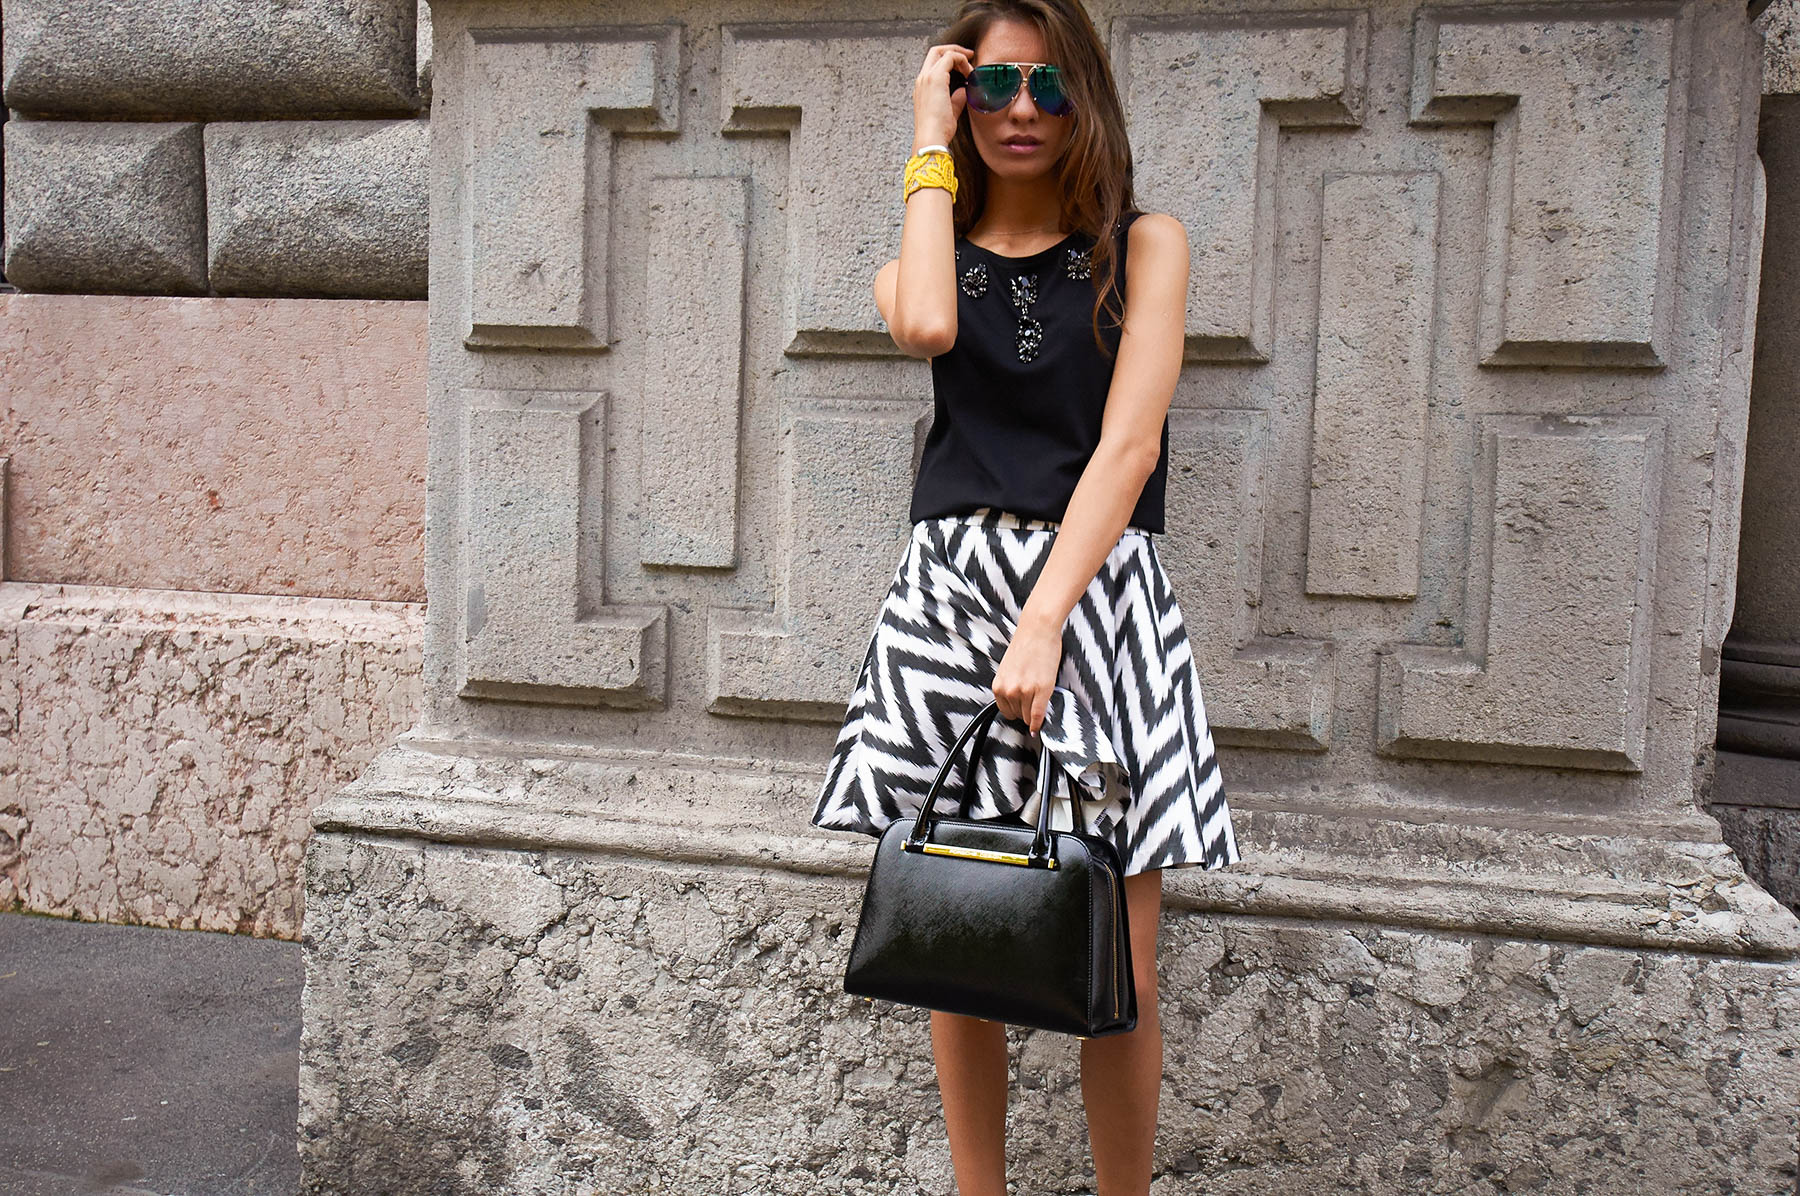 fashion blogger dodo said moelbosh skirt 12 - Танцуют все: рекламная кампания Dior